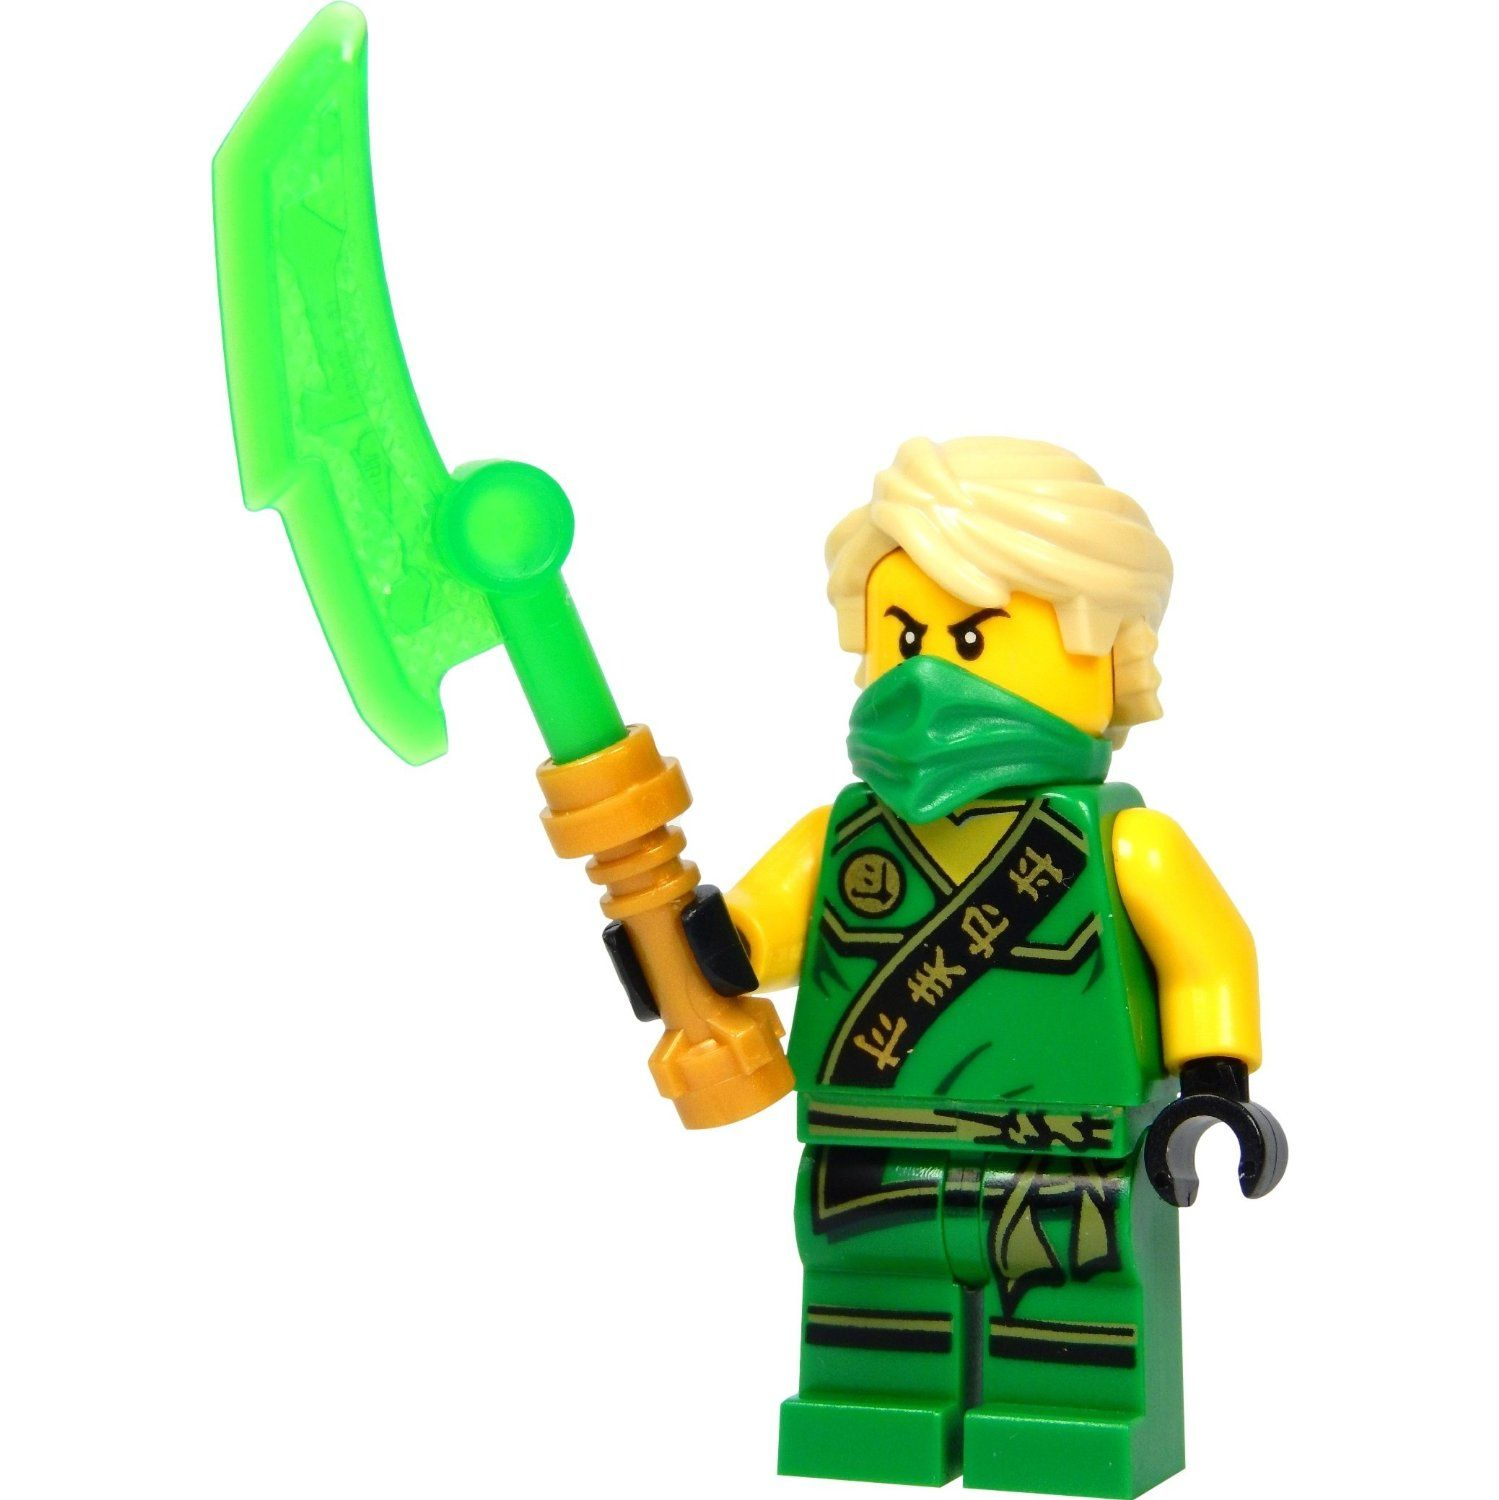 lego ninjago minifigur lloyd garmadon gr ner ninja mit jadeschwert 2015 neuheit. Black Bedroom Furniture Sets. Home Design Ideas